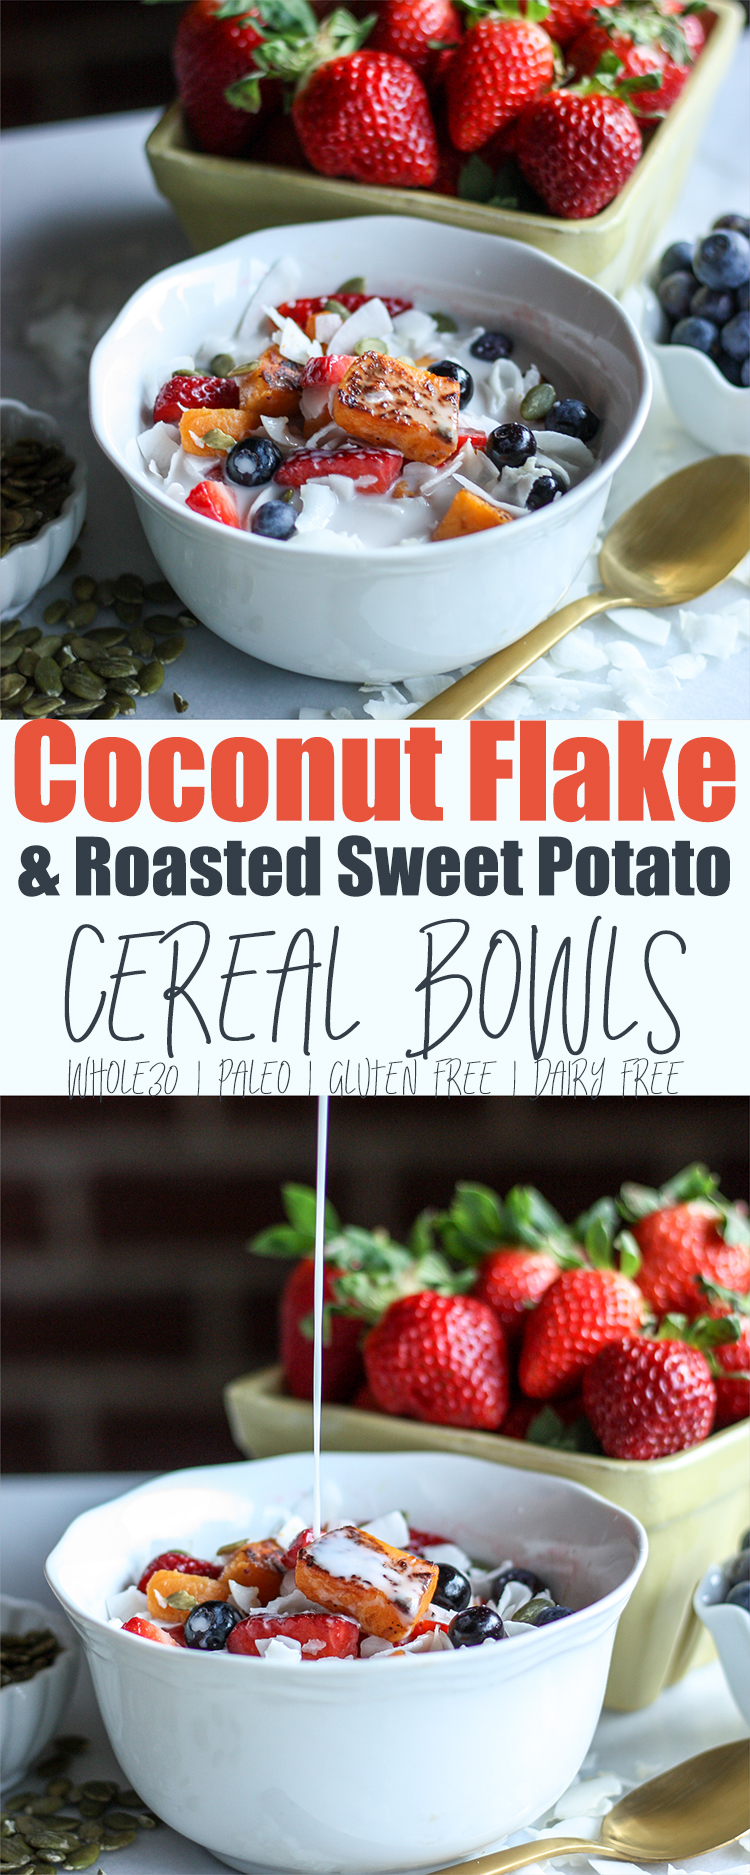 Coconut Flake and Roasted Sweet Potato Cereal Bowl